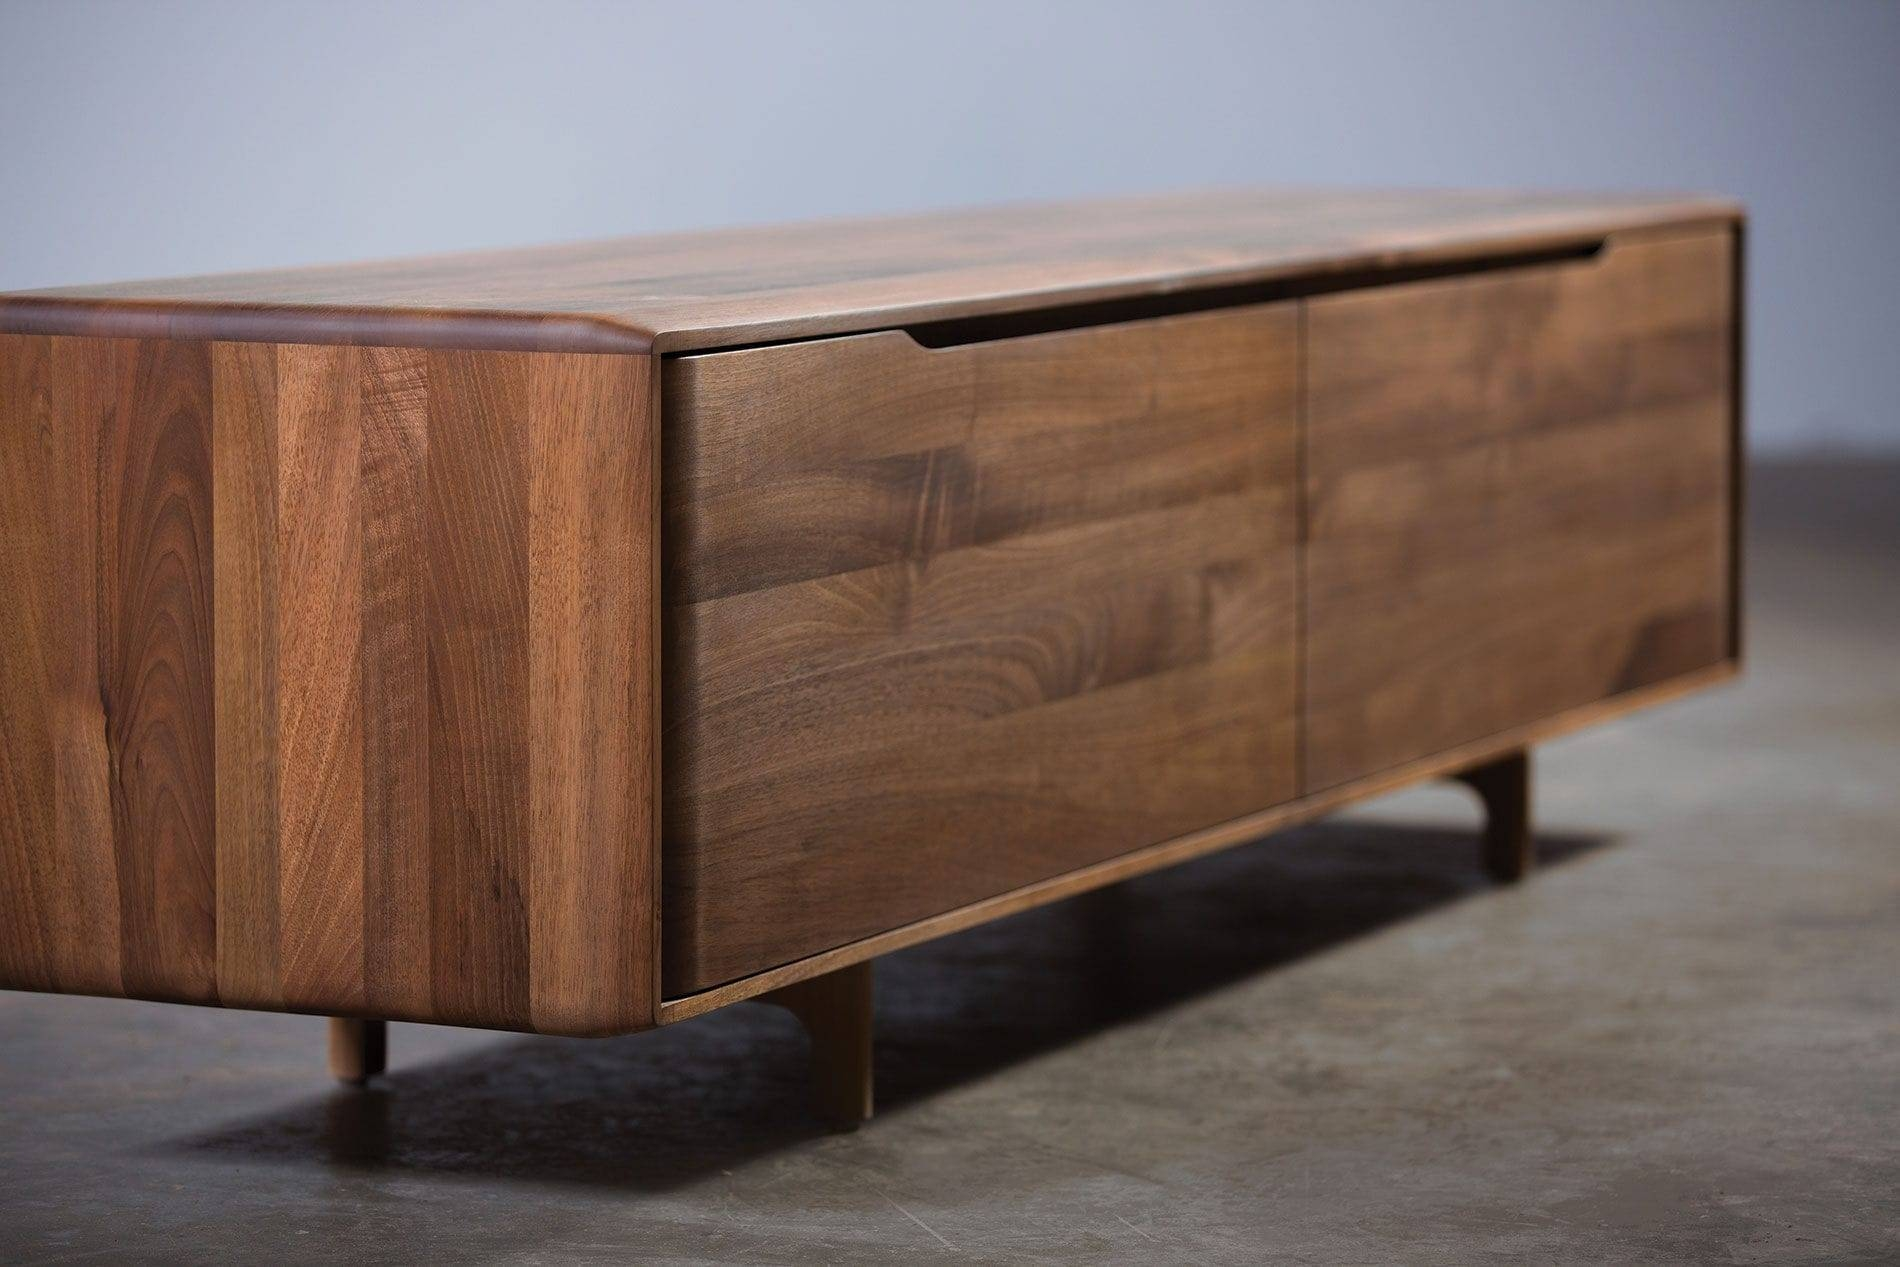 Contemporary Sideboard / Oak / Walnut / Solid Wood – Invito With Real Wood Sideboard (View 2 of 20)